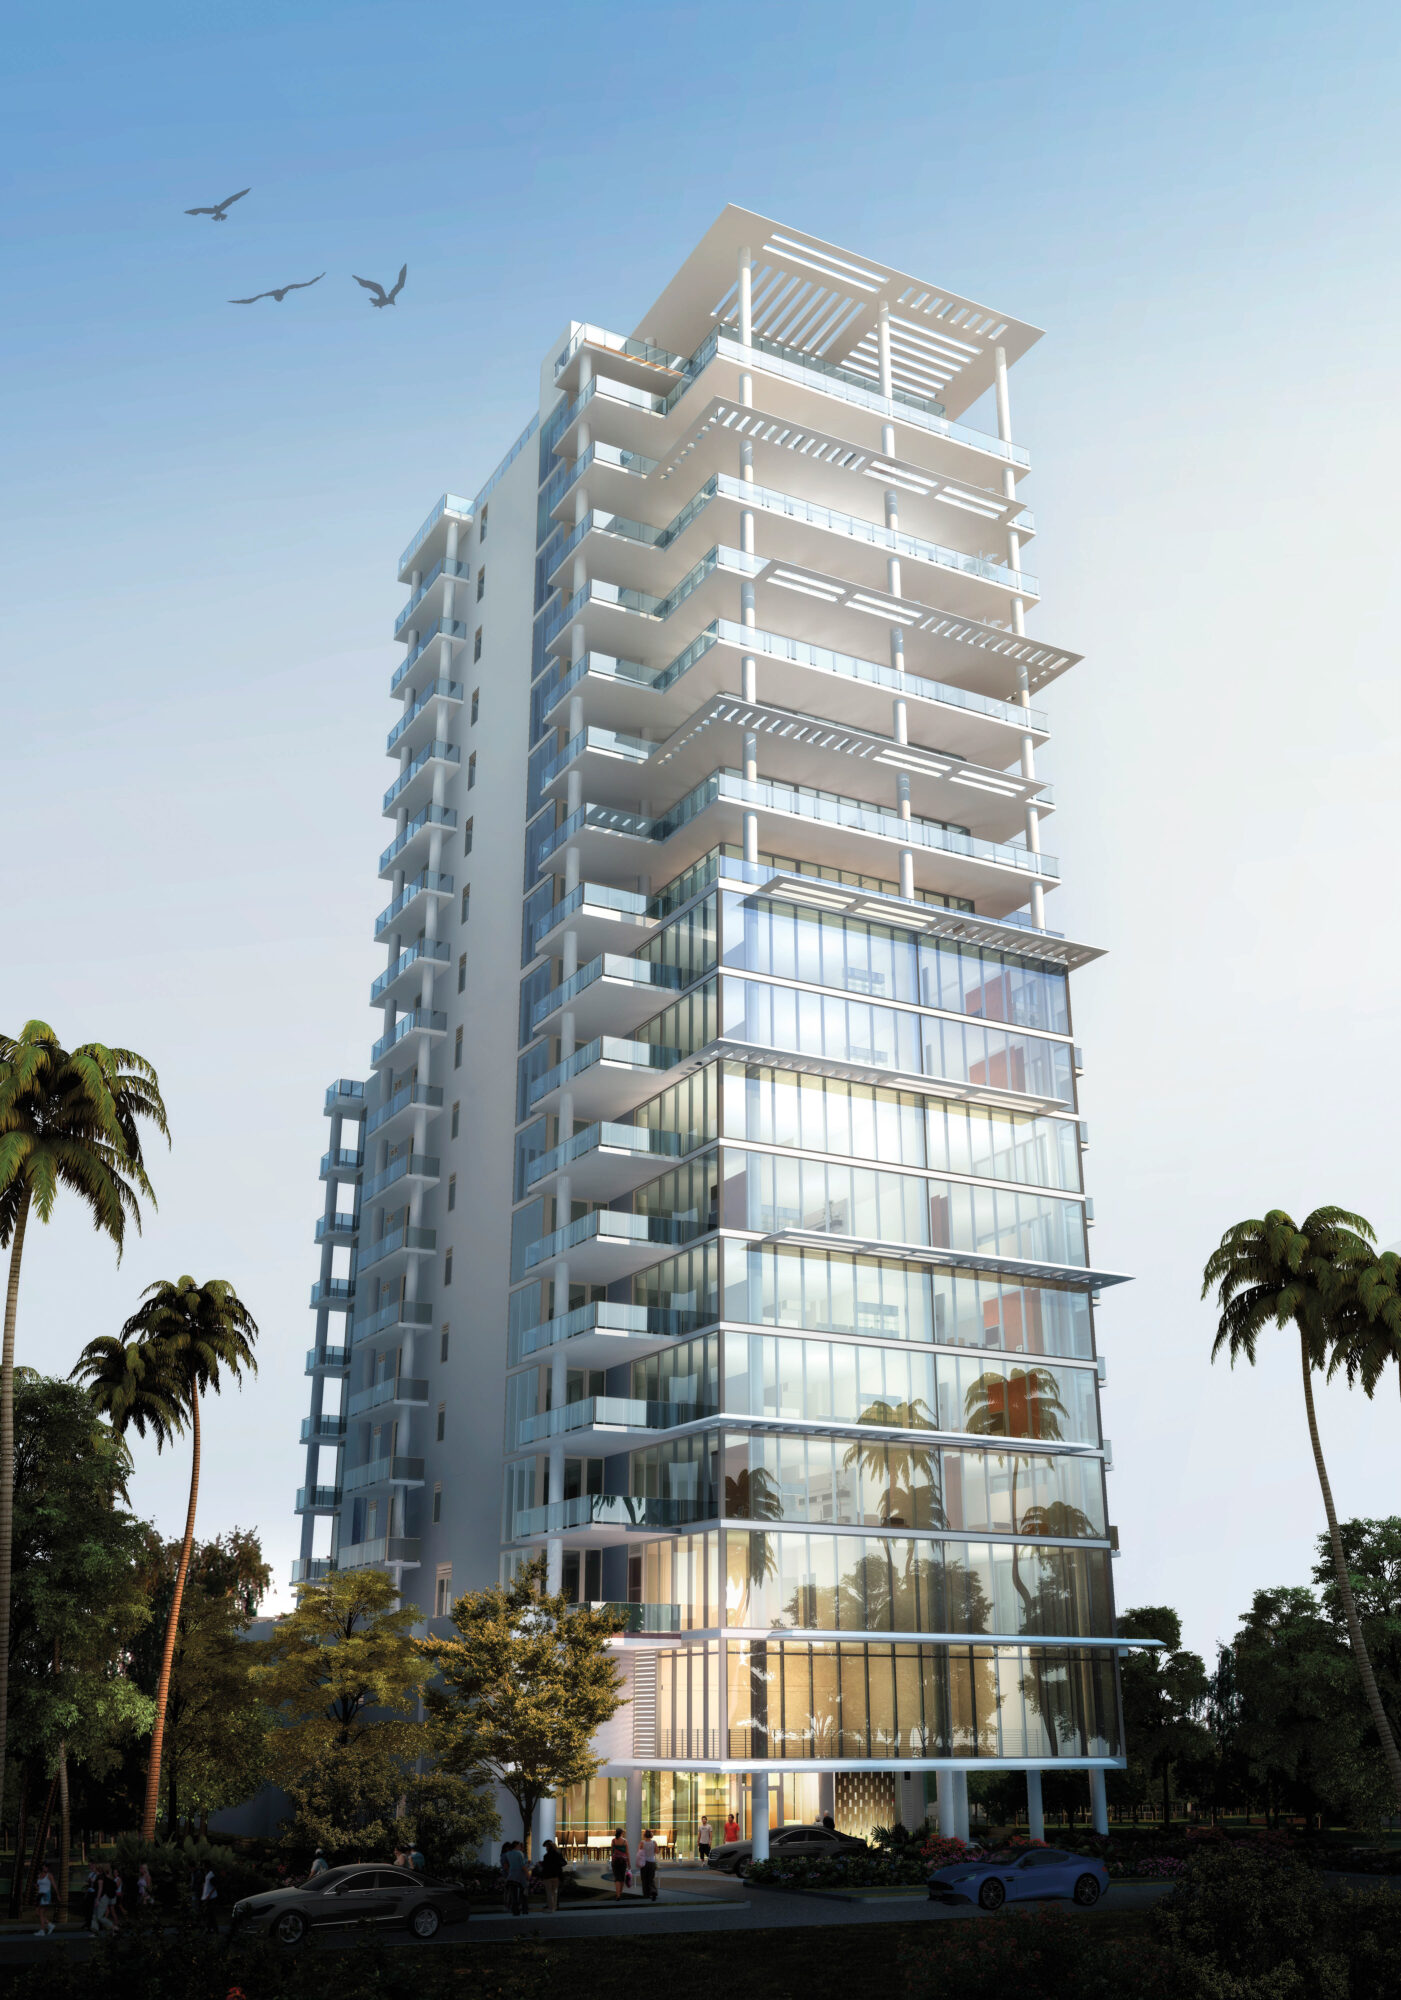 Rendering of a high-rise building